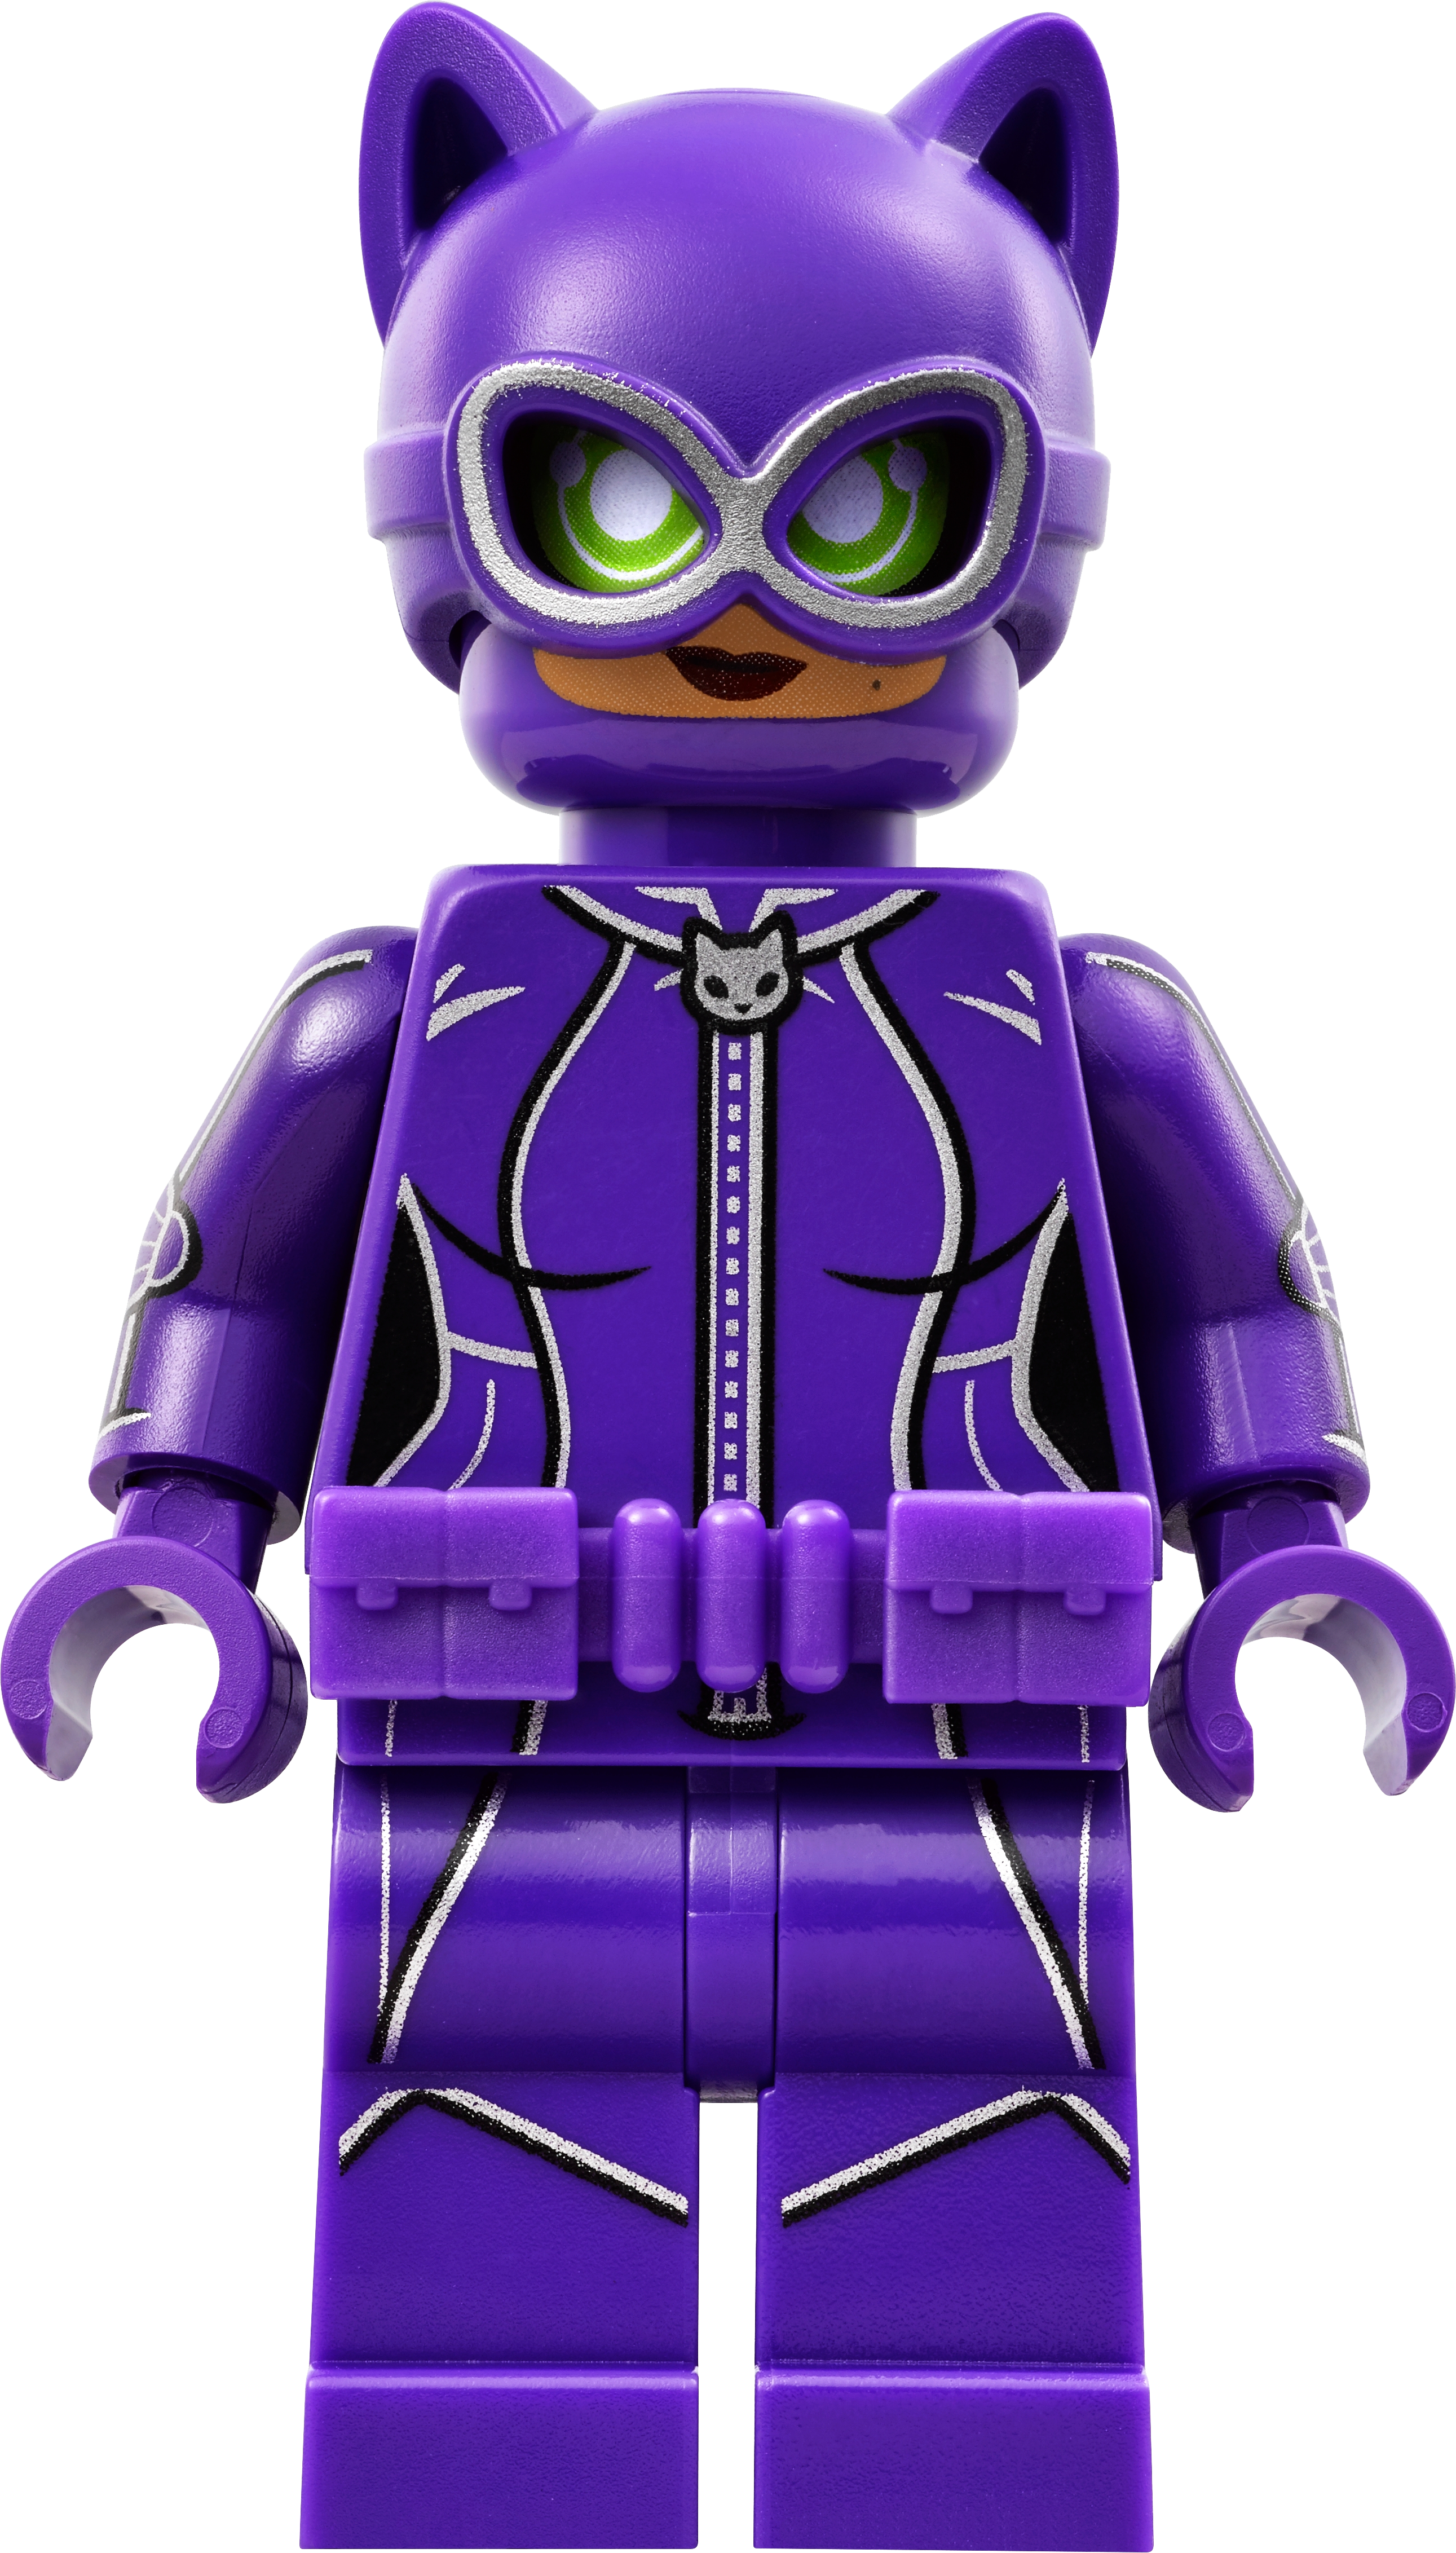 Catwoman™ Catcycle Chase